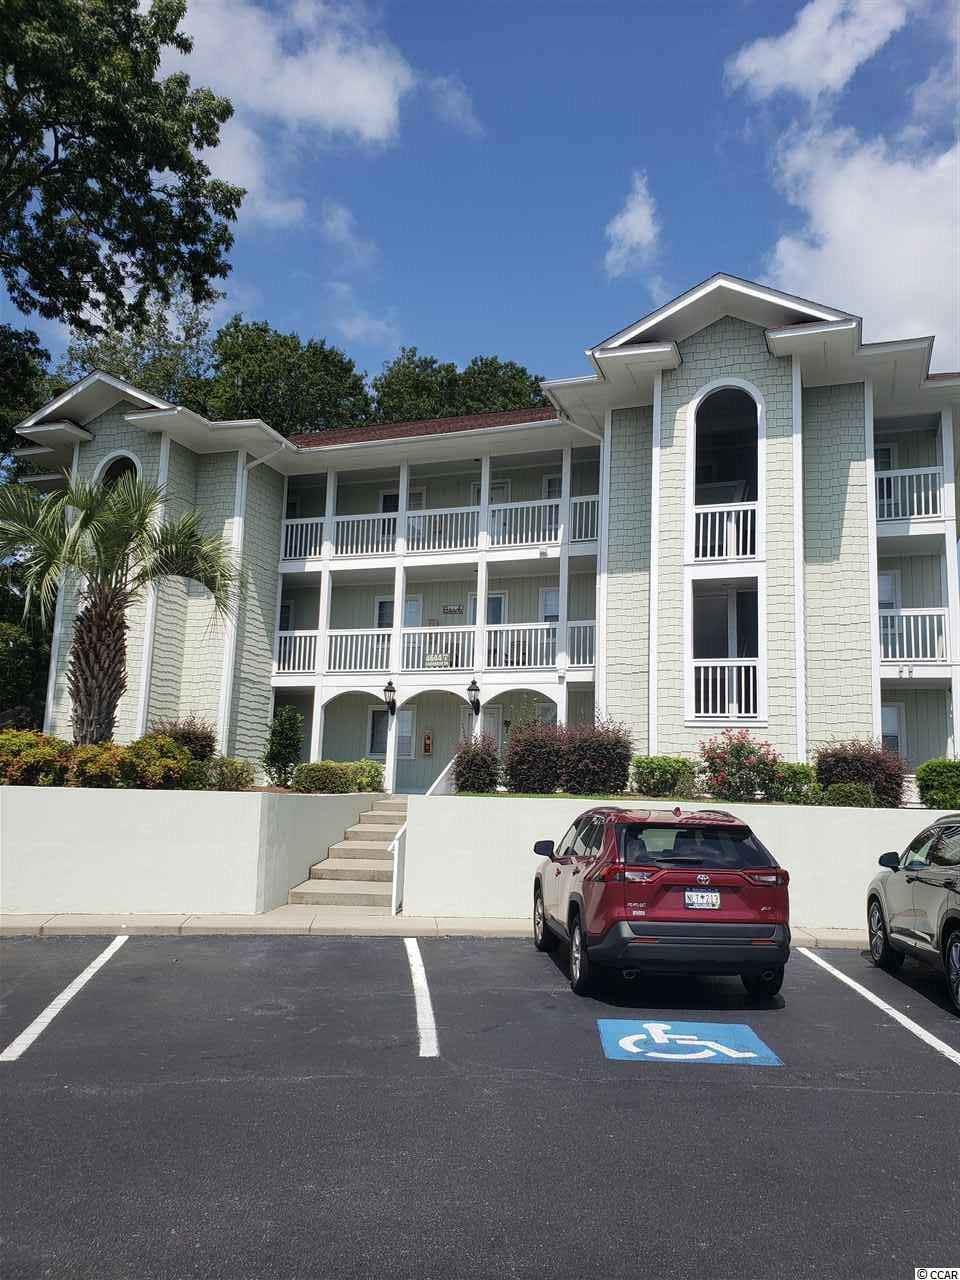 TURNKEY CONDO AT EAST PORT GOLF COURSE. 2 BED, 2 BATH 2ND FLOOR WITH OUTSIDE STORAGE, NEW CARPET, NEW HOT WATER HEATER, HVAC 8 MONTHS OLD,  ENCLOSED PORCH OVER LOOKING 5TH HOLE. OUTSIDE SWIMMING POOL. HOA includes water/sewer,trash pick up, insurance, cable, lawn, pool service.